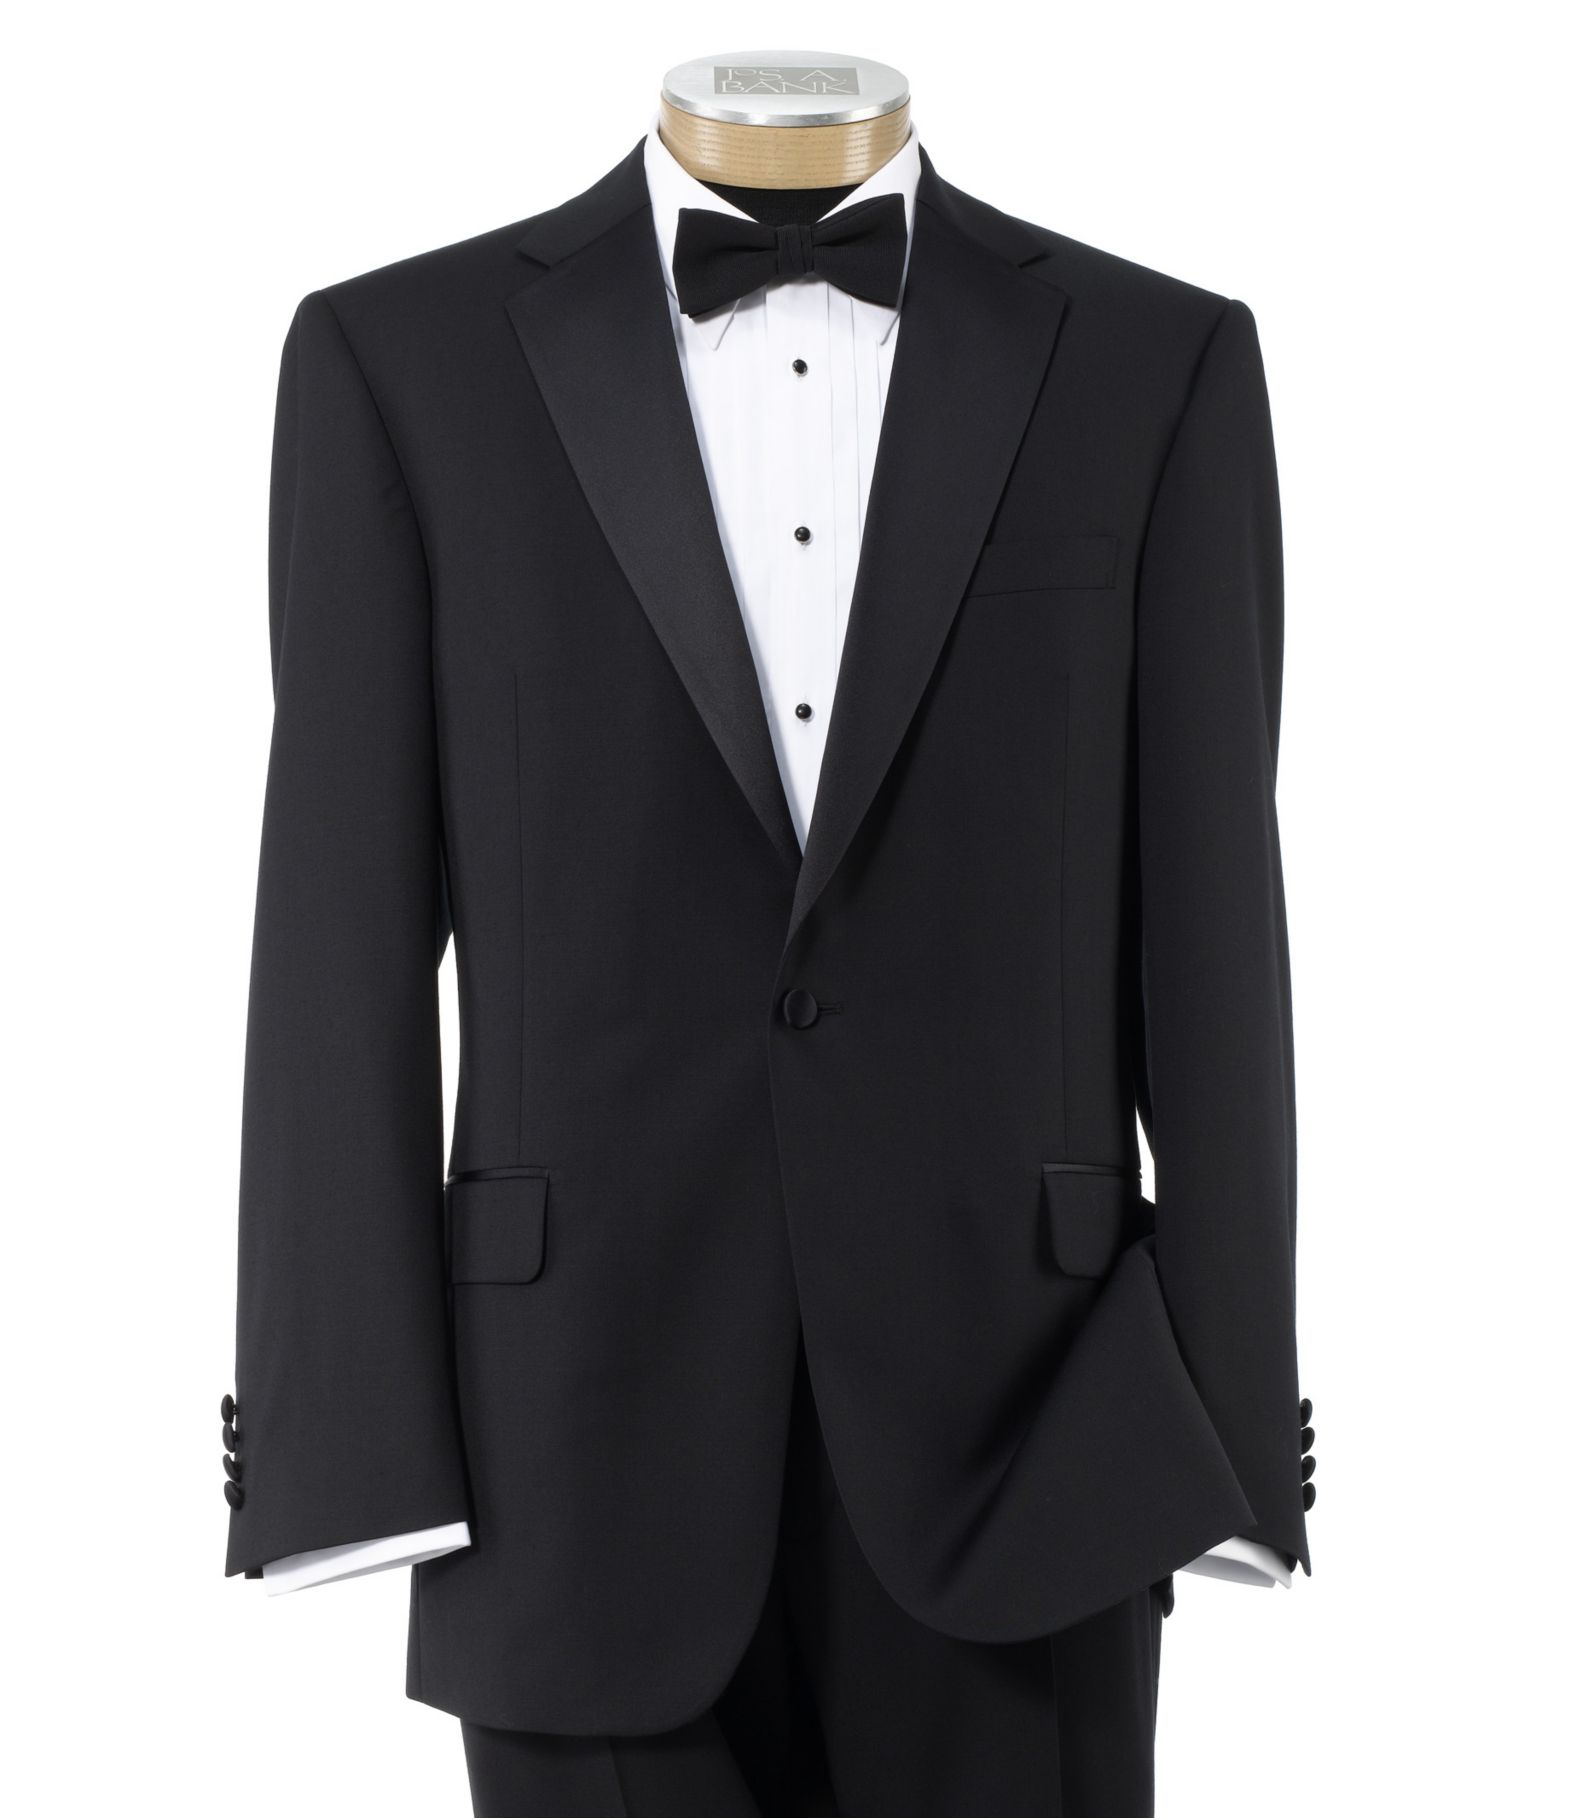 Traveler Collection Tailored Fit Tuxedo